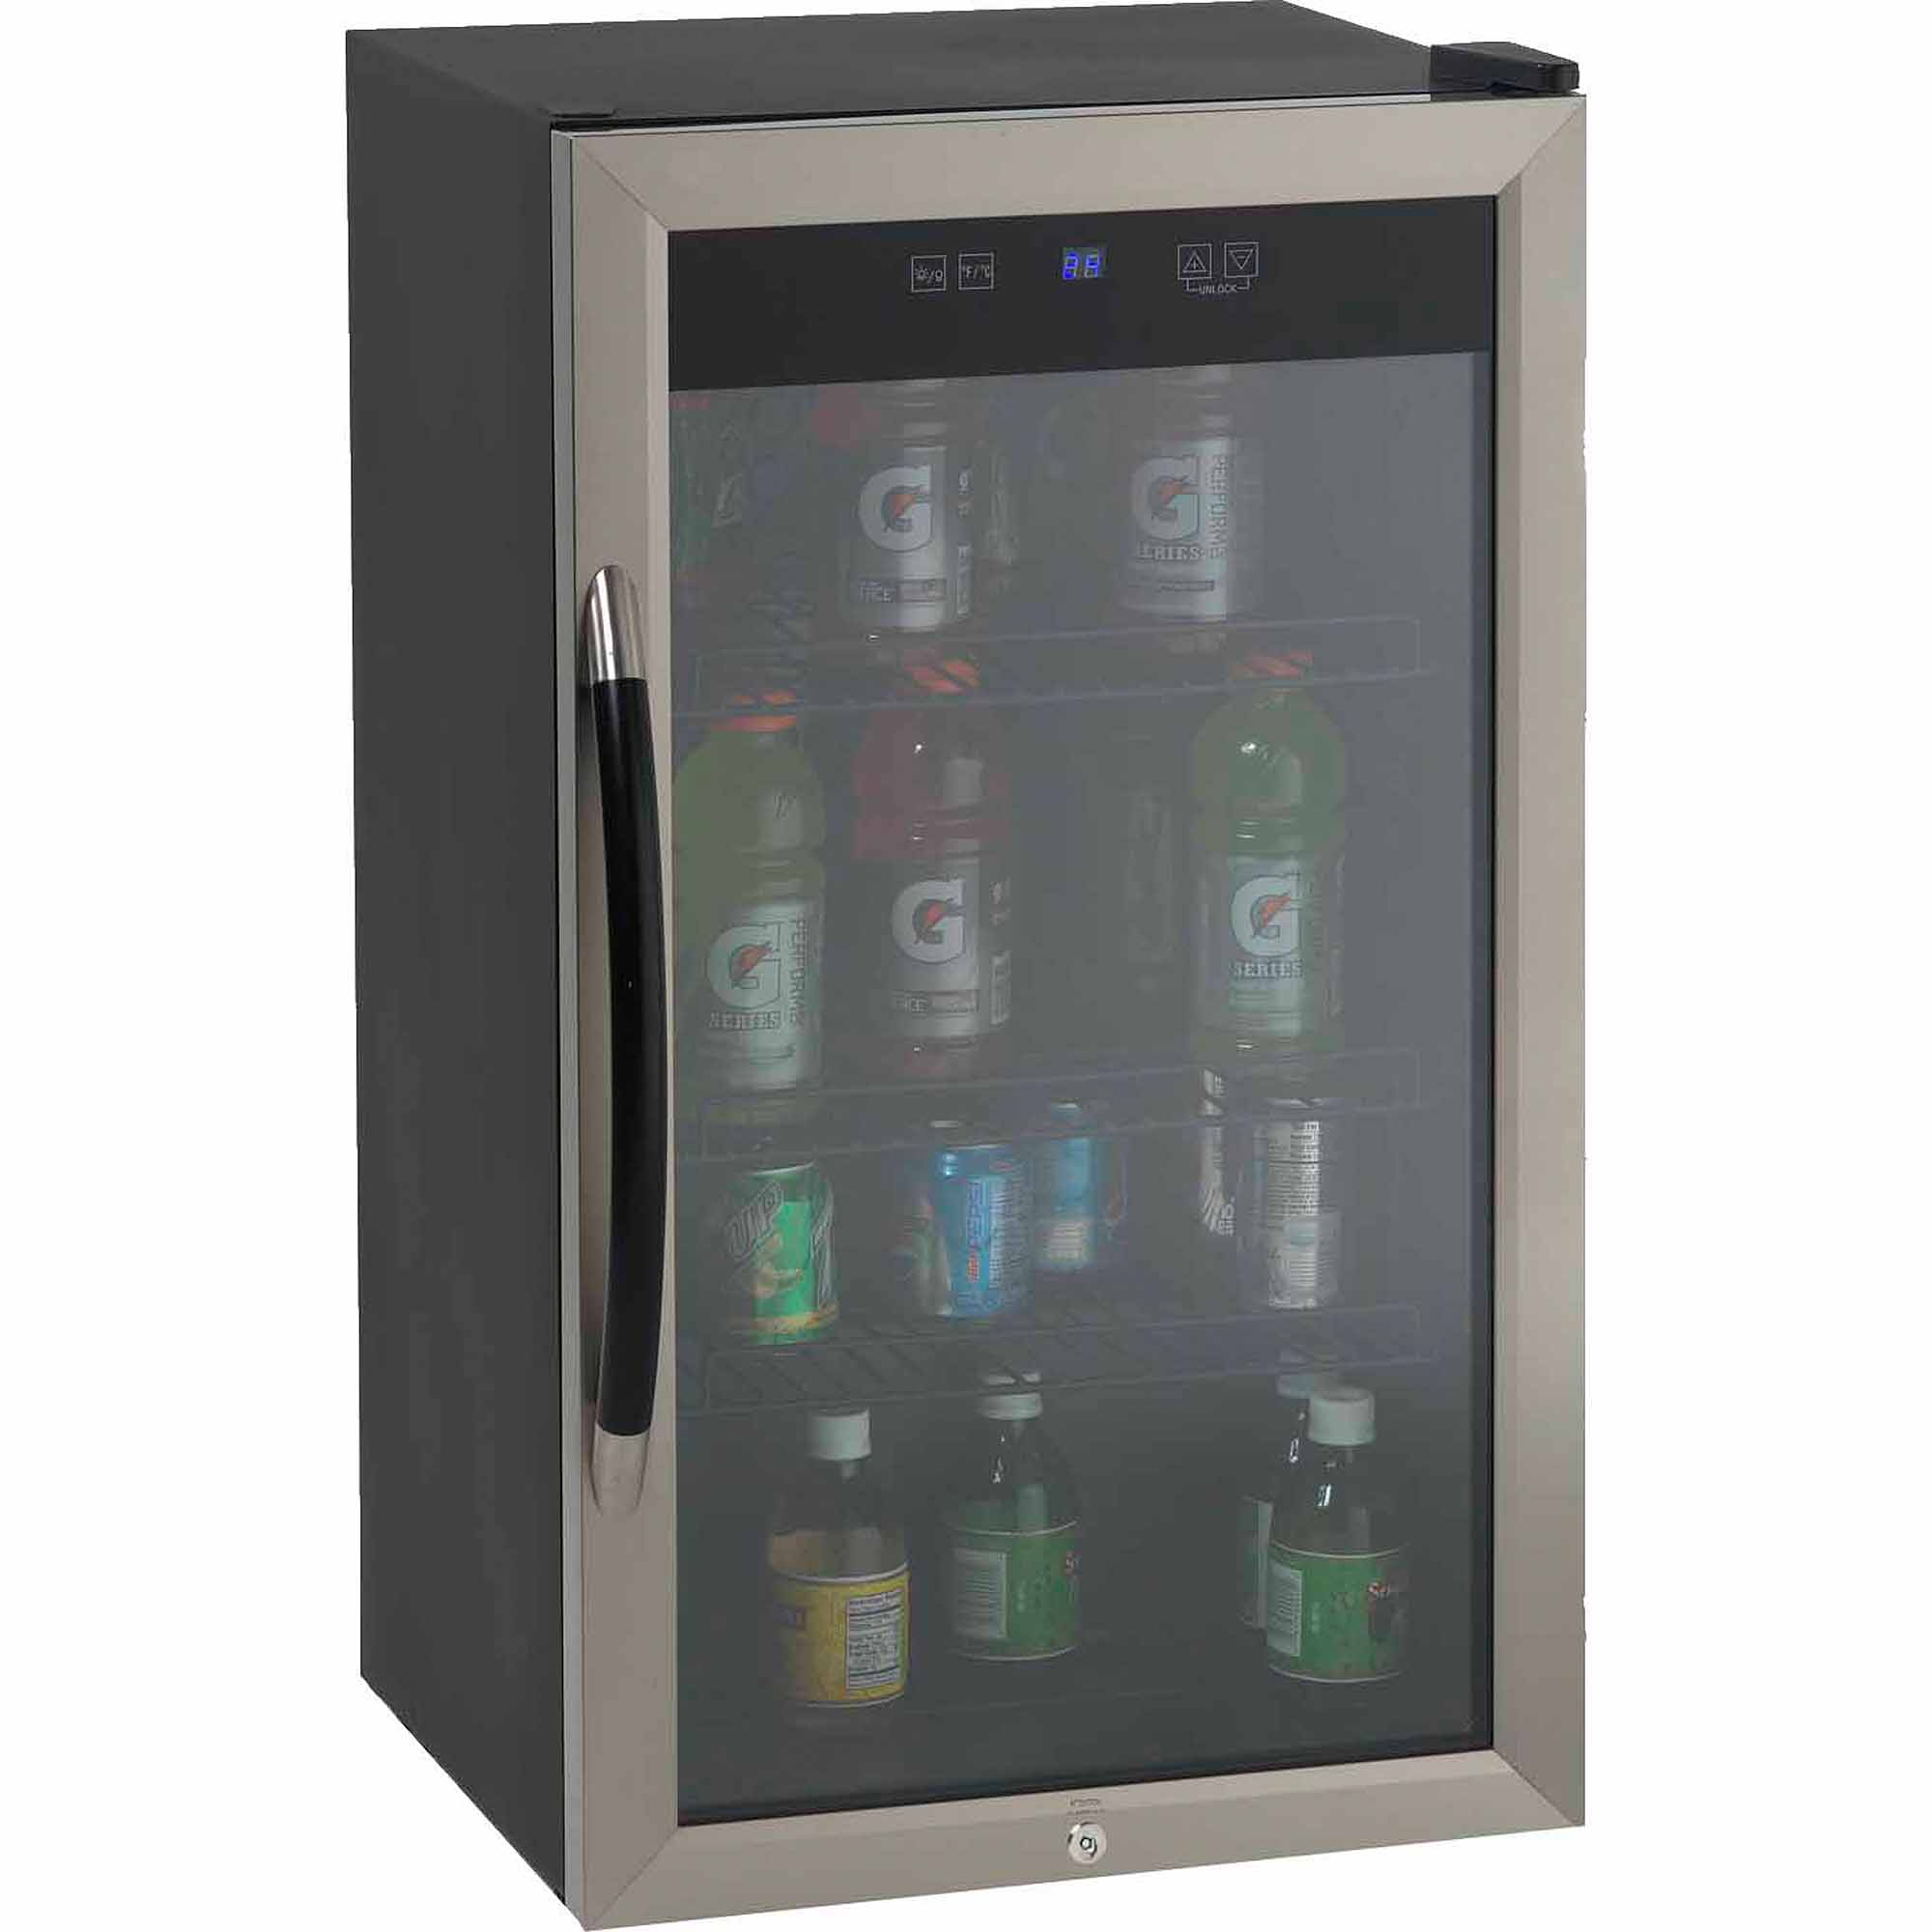 Design Fridge With Glass Door costway 120 can beverage refrigerator beer wine soda drink cooler mini fridge glass door walmart com